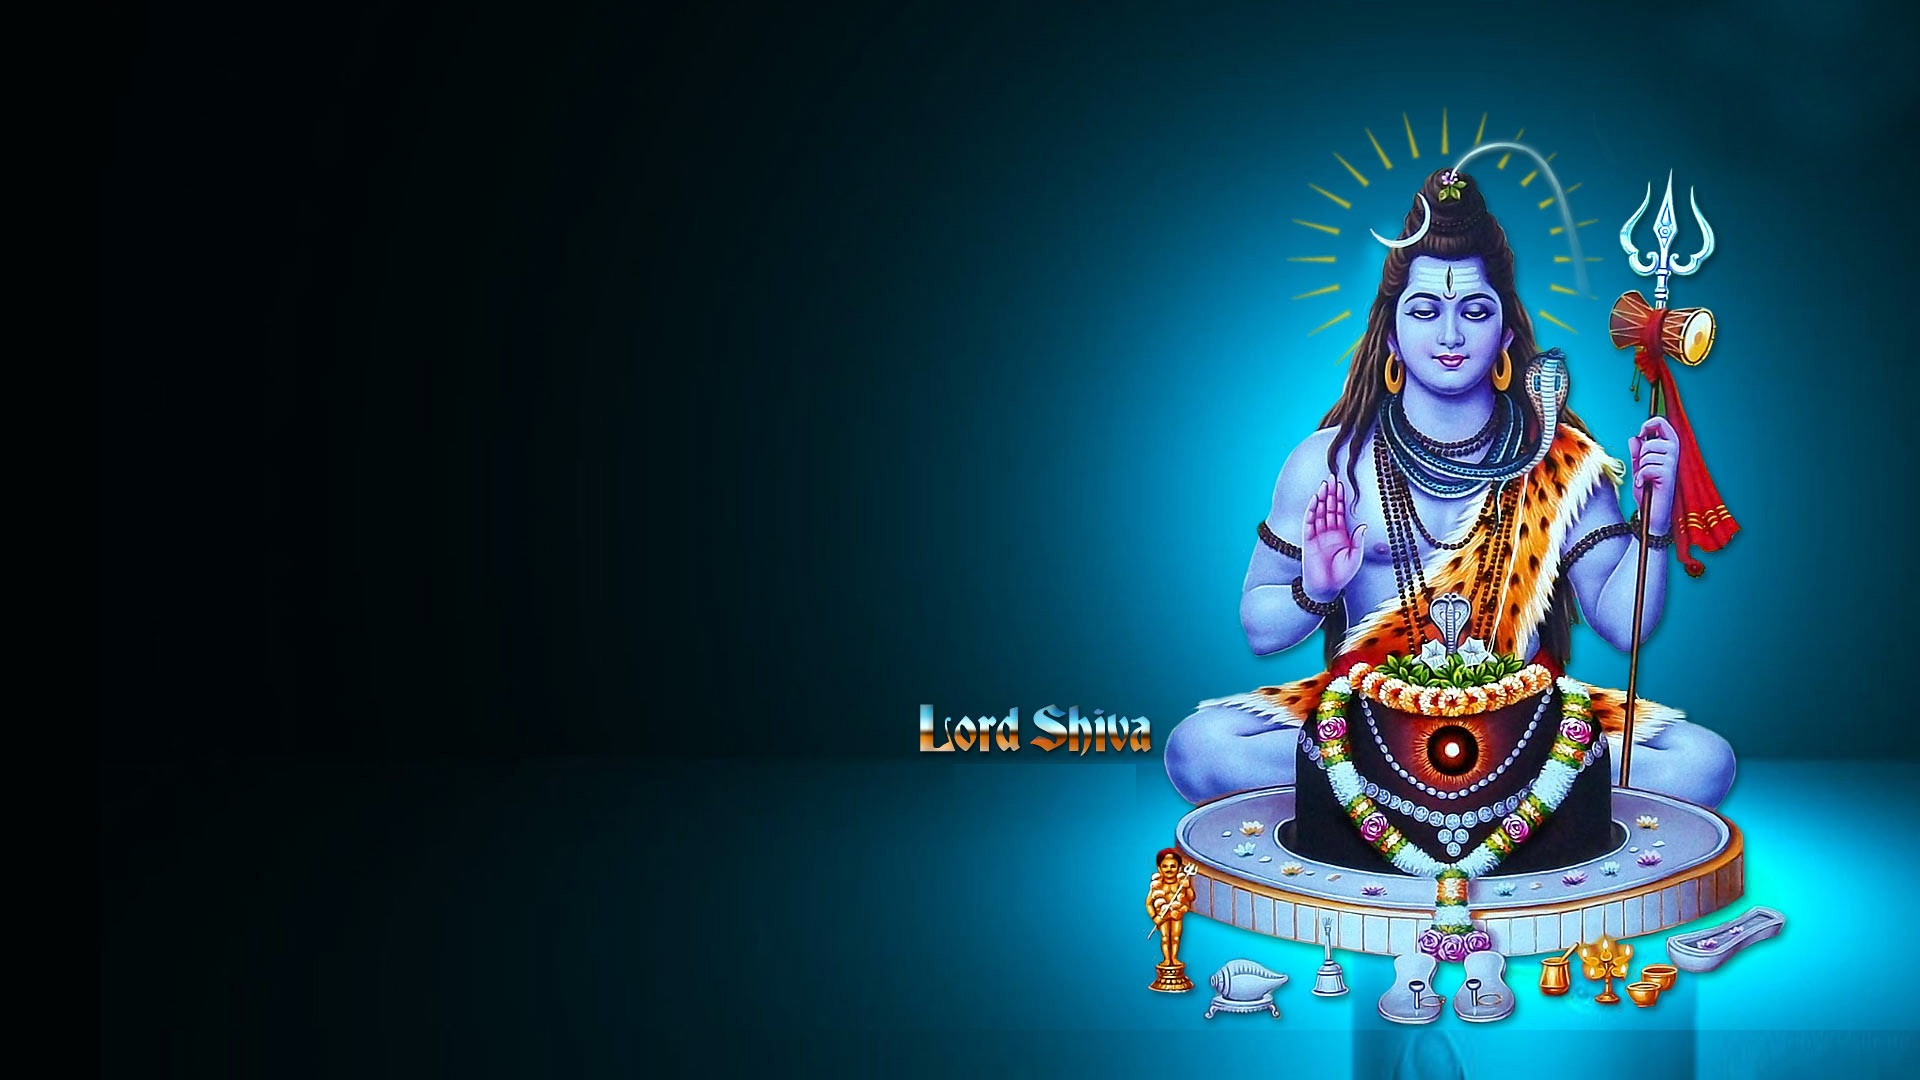 maha-shivaratri-Google-Search-wallpaper-wp5801181-1